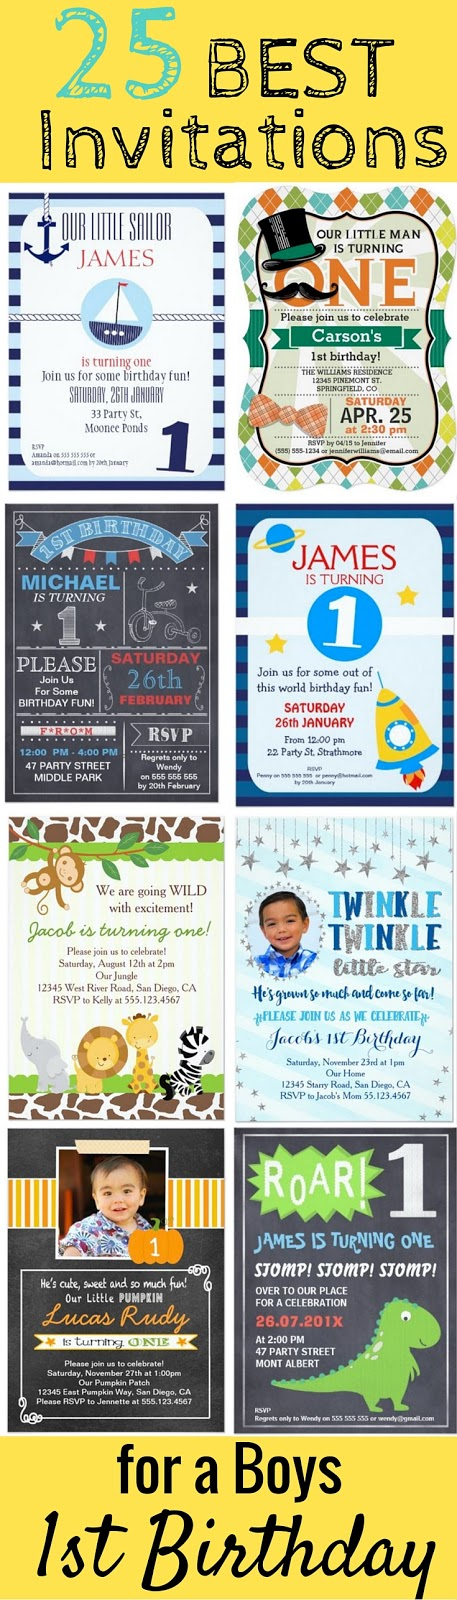 Miriam Kokolo The 25 BEST 1st Birthday Party Invitations for Boys